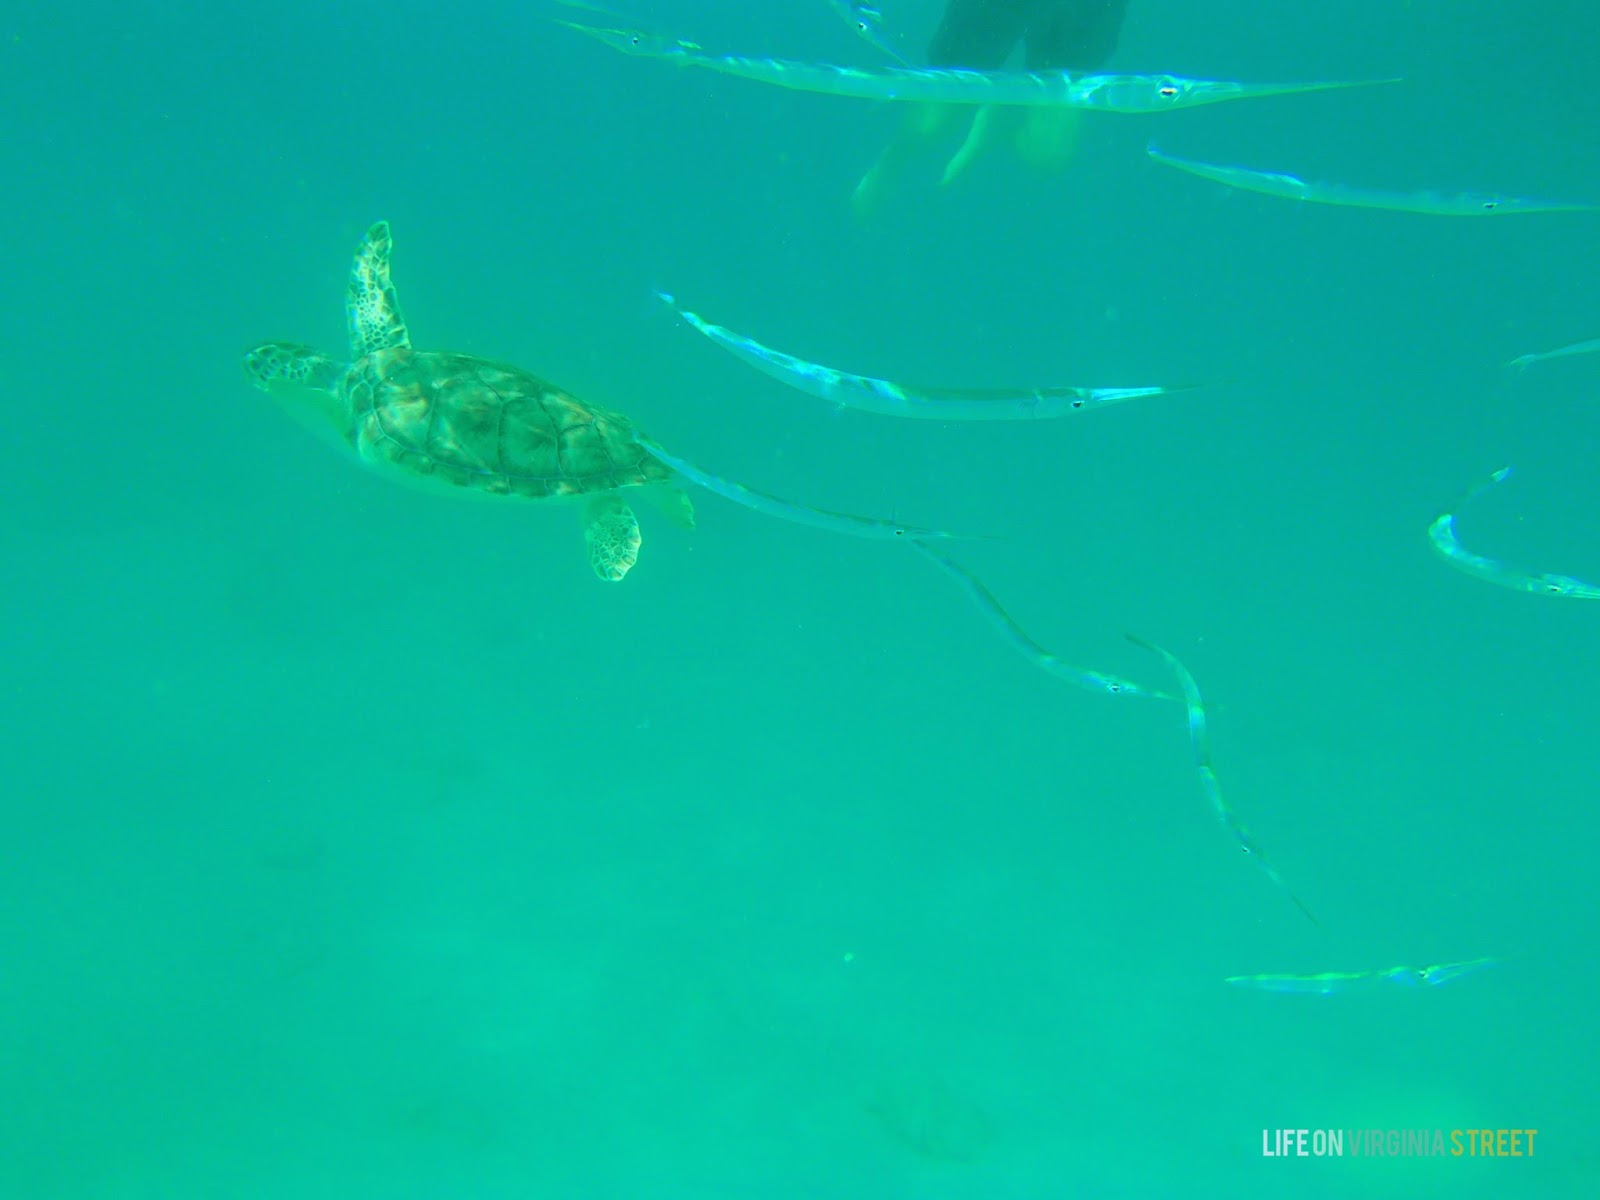 A turtle swimming in the ocean beside long fish.